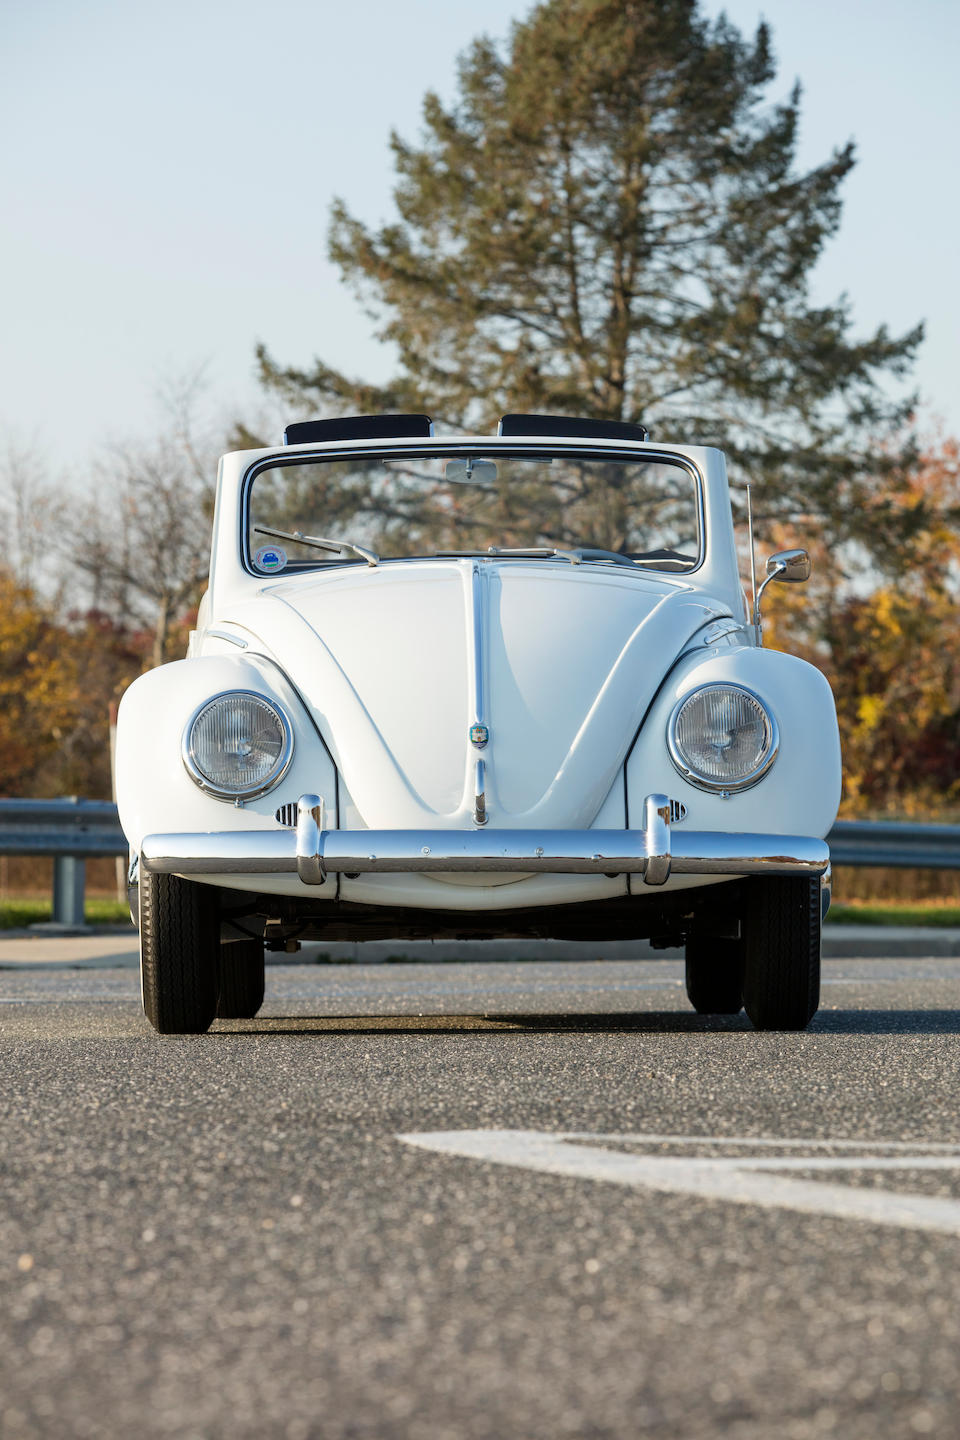 <b>1956 Volkswagen Type 1 Beetle Cabriolet</b><br />Chassis no. 1575247<br />Engine no. 3663424